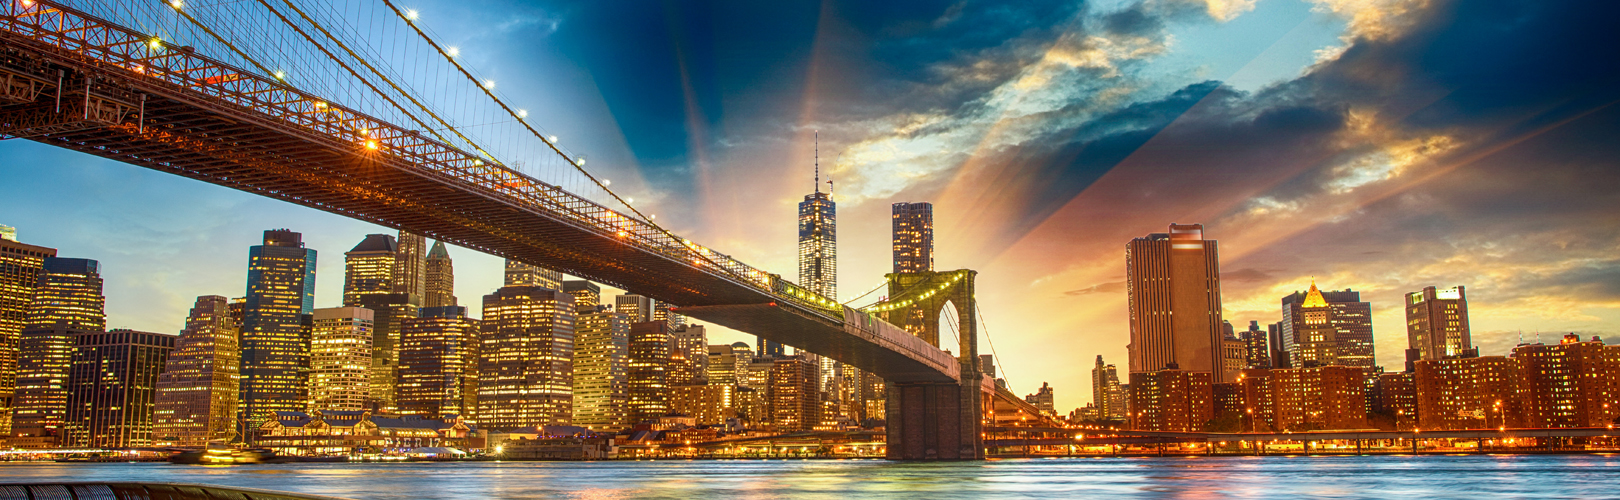 $77 New York city pass for 3 attractions of your choice!!